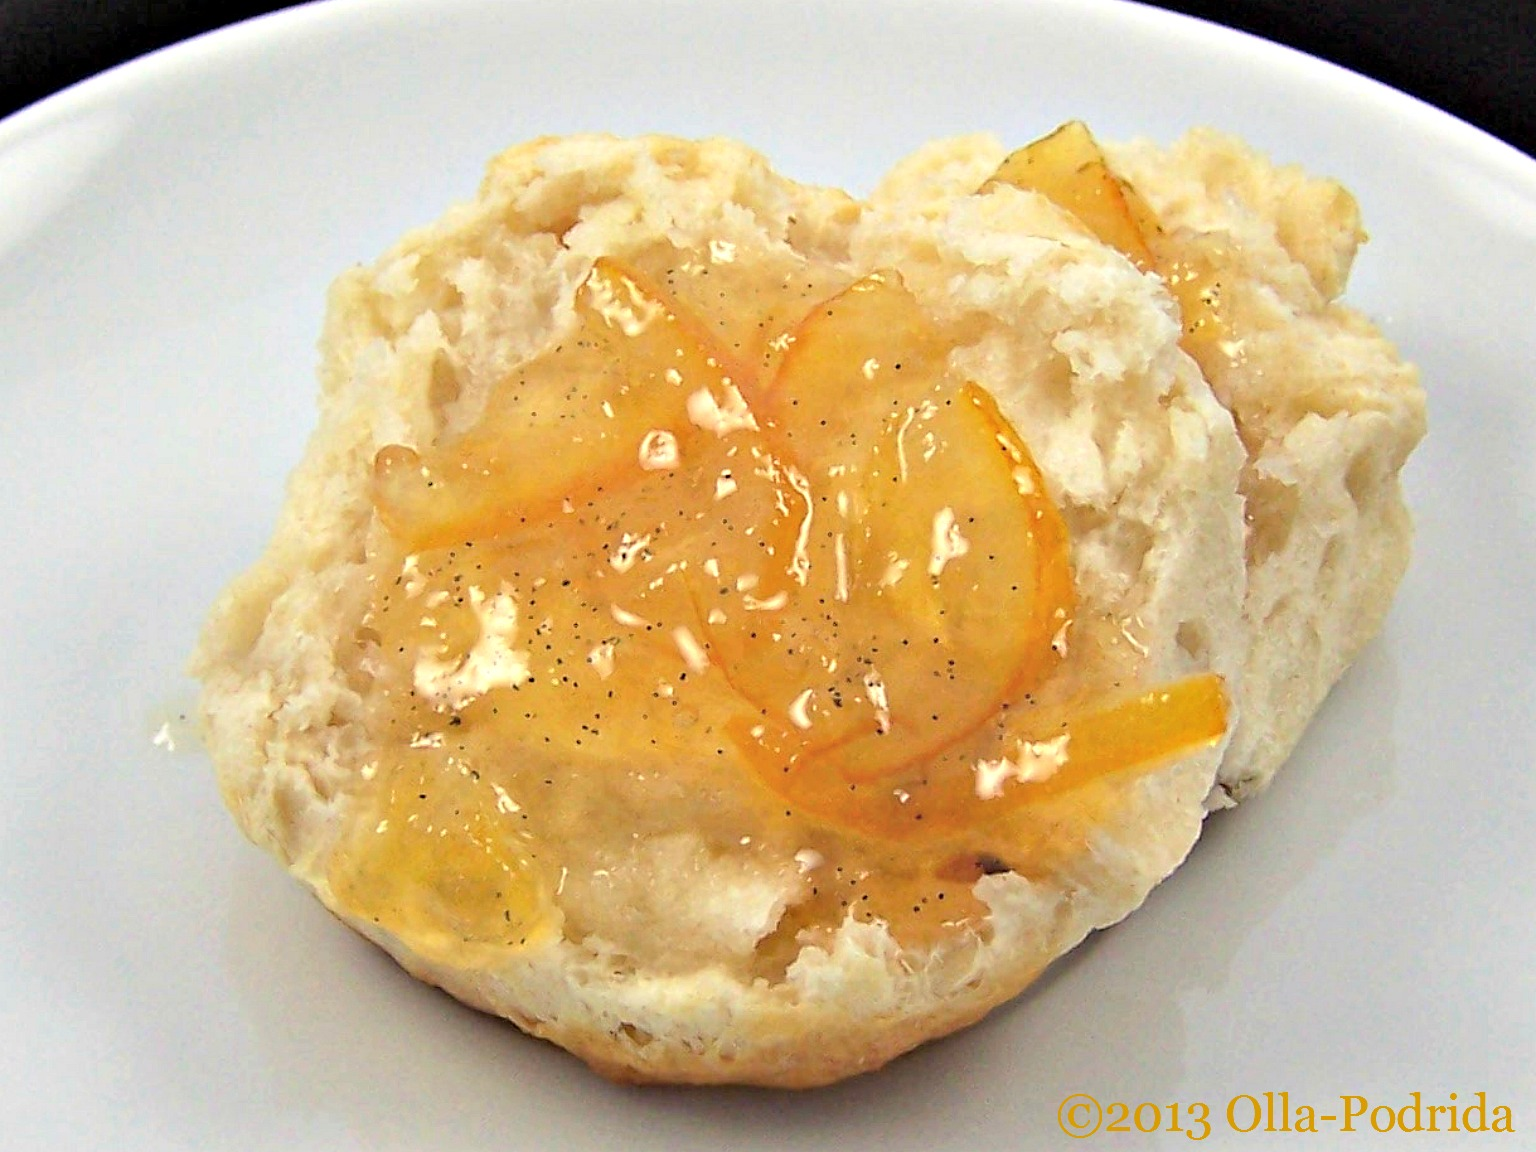 Olla-Podrida: Meyer Lemon and Vanilla Bean Marmalade